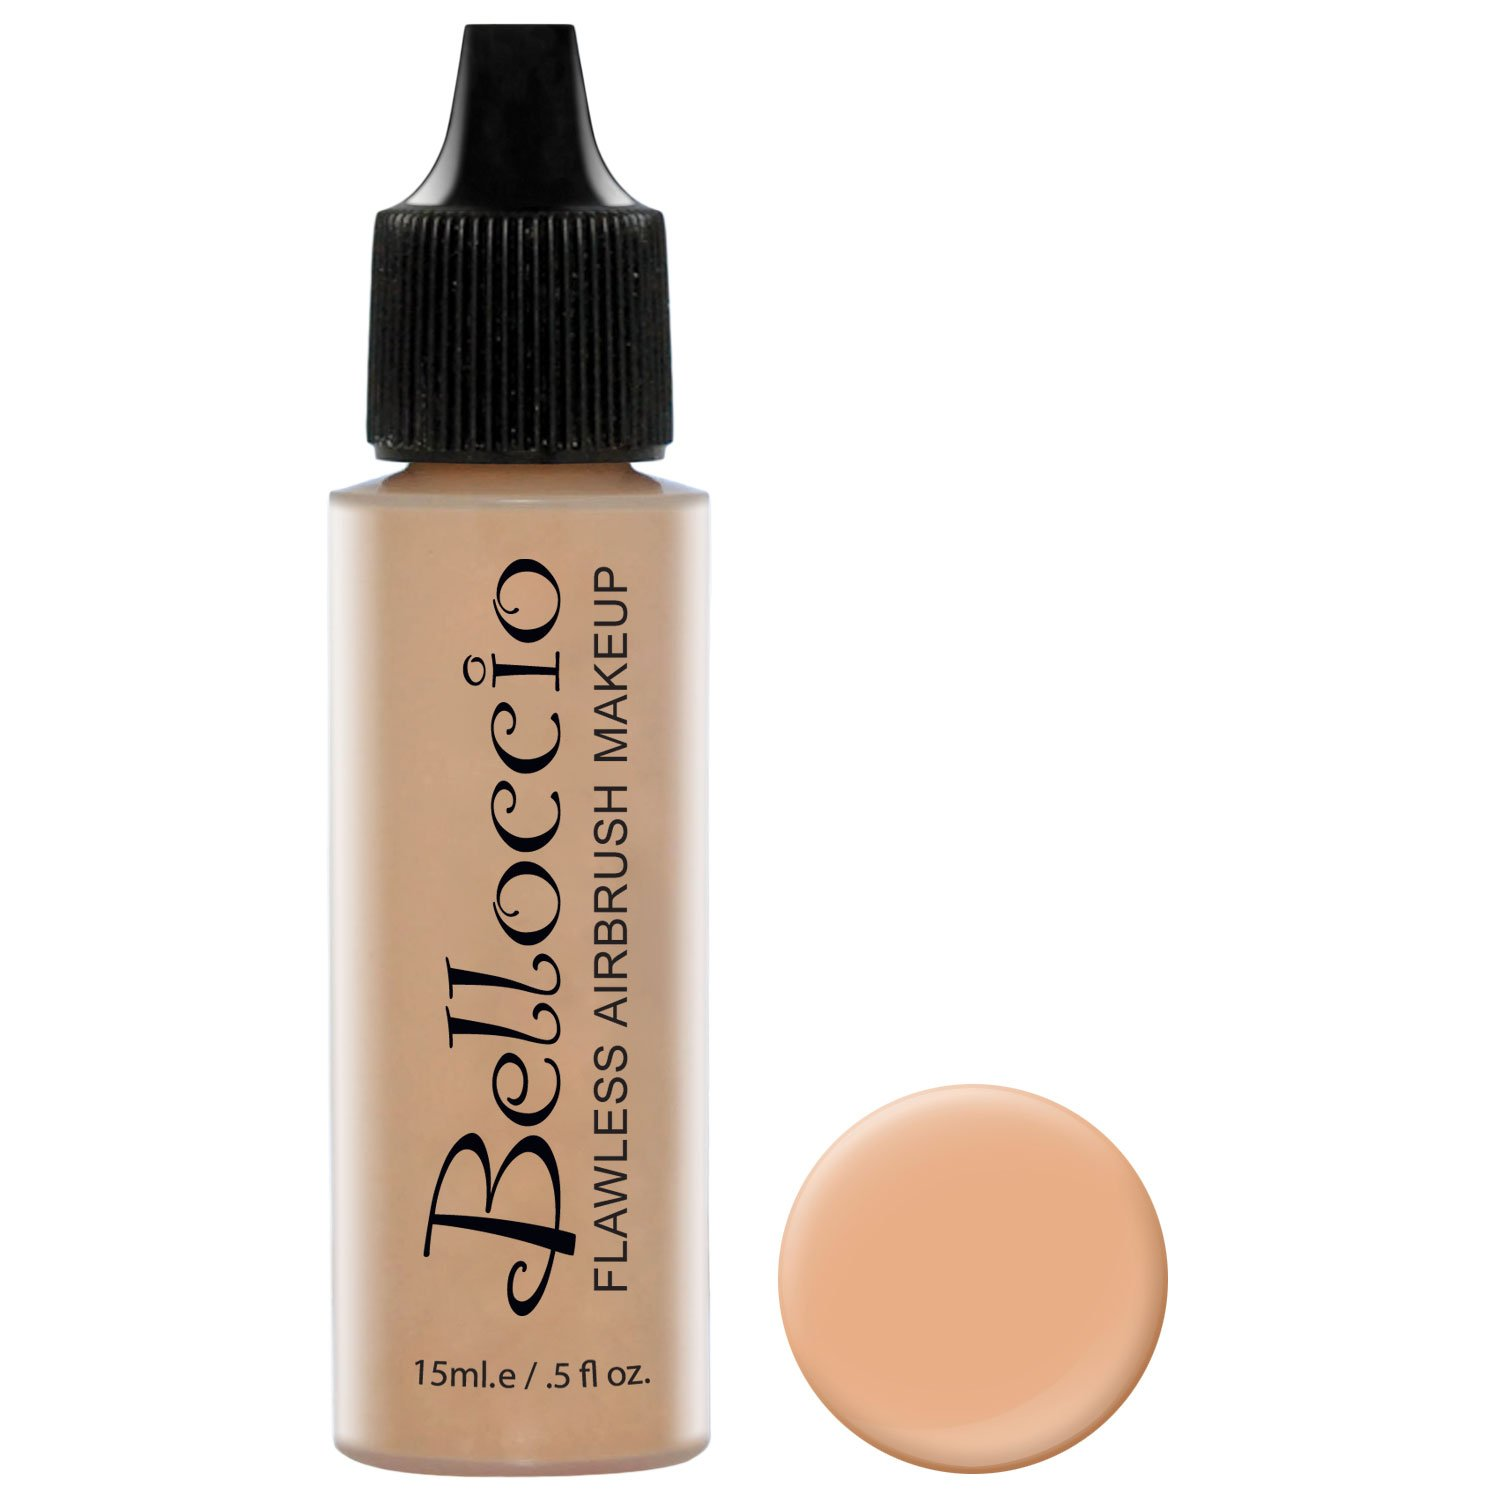 Belloccio's Professional Cosmetic Airbrush Makeup Foundation 1/2oz Bottle: Ivory- Light-medium Neutral Pink And Yellow Undertones